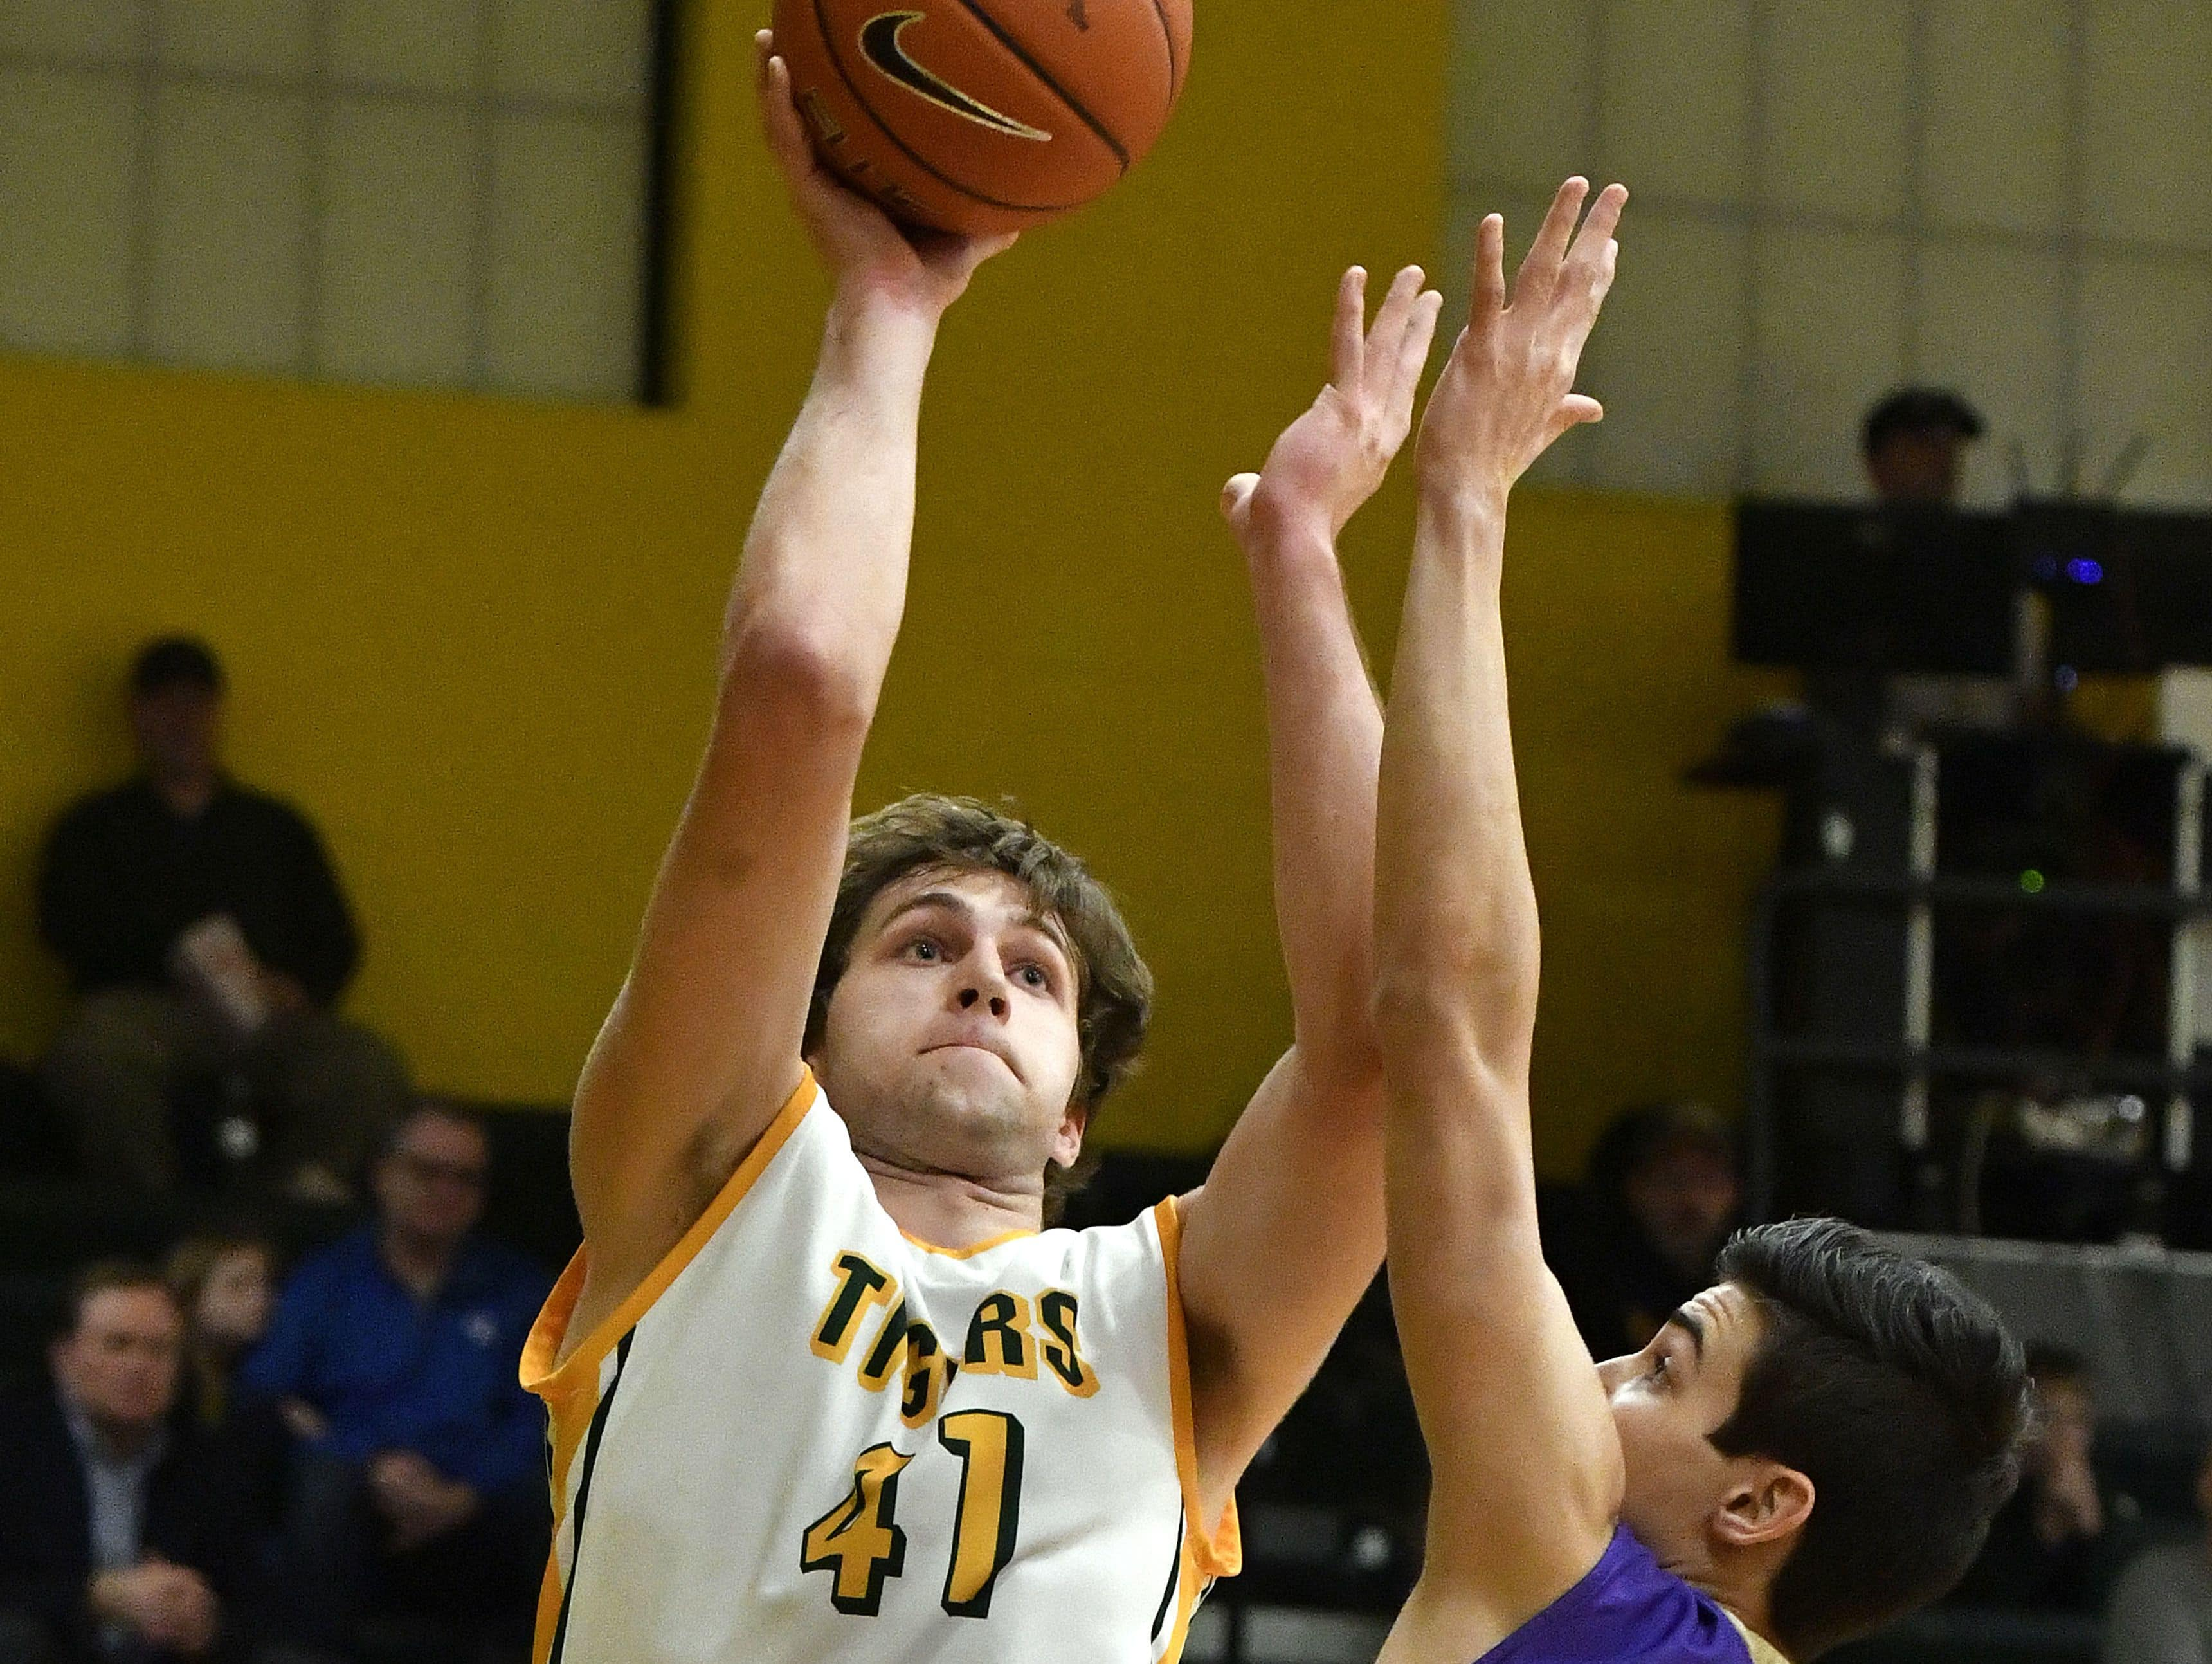 St. Xavier's Pierce Kiesler (41) puts up a shot up over the defense of Male's Shane Doughty (25) during action of their game, Friday, Feb. 03, 2017 in Louisville Ky.